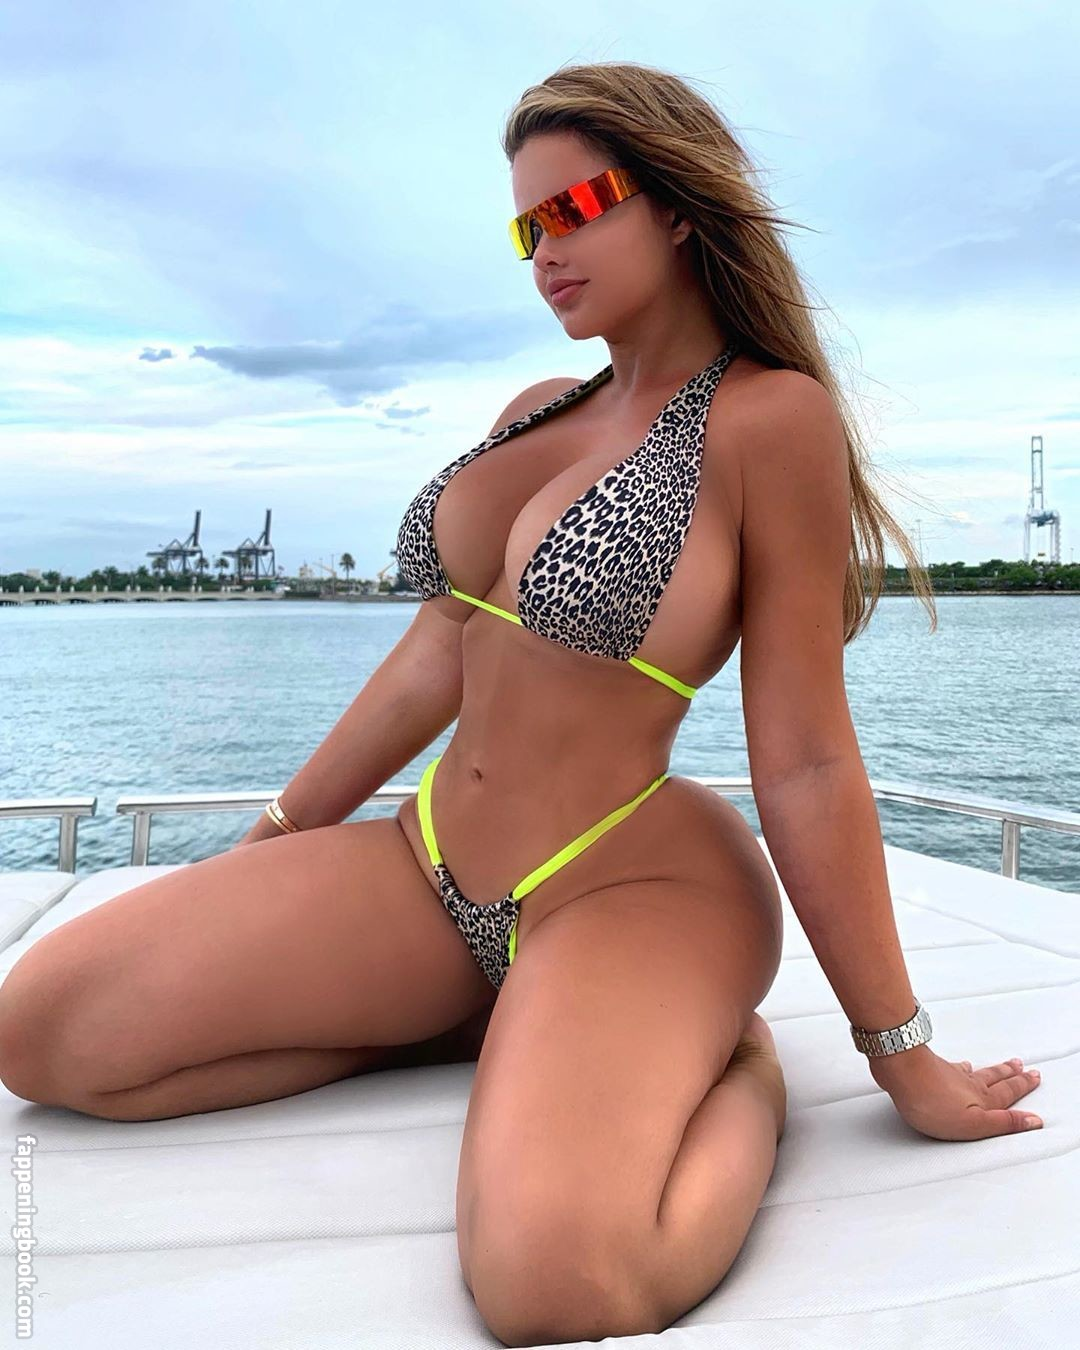 Anastasia Kvitko Nude anastasia kvitko nude, sexy, the fappening, uncensored